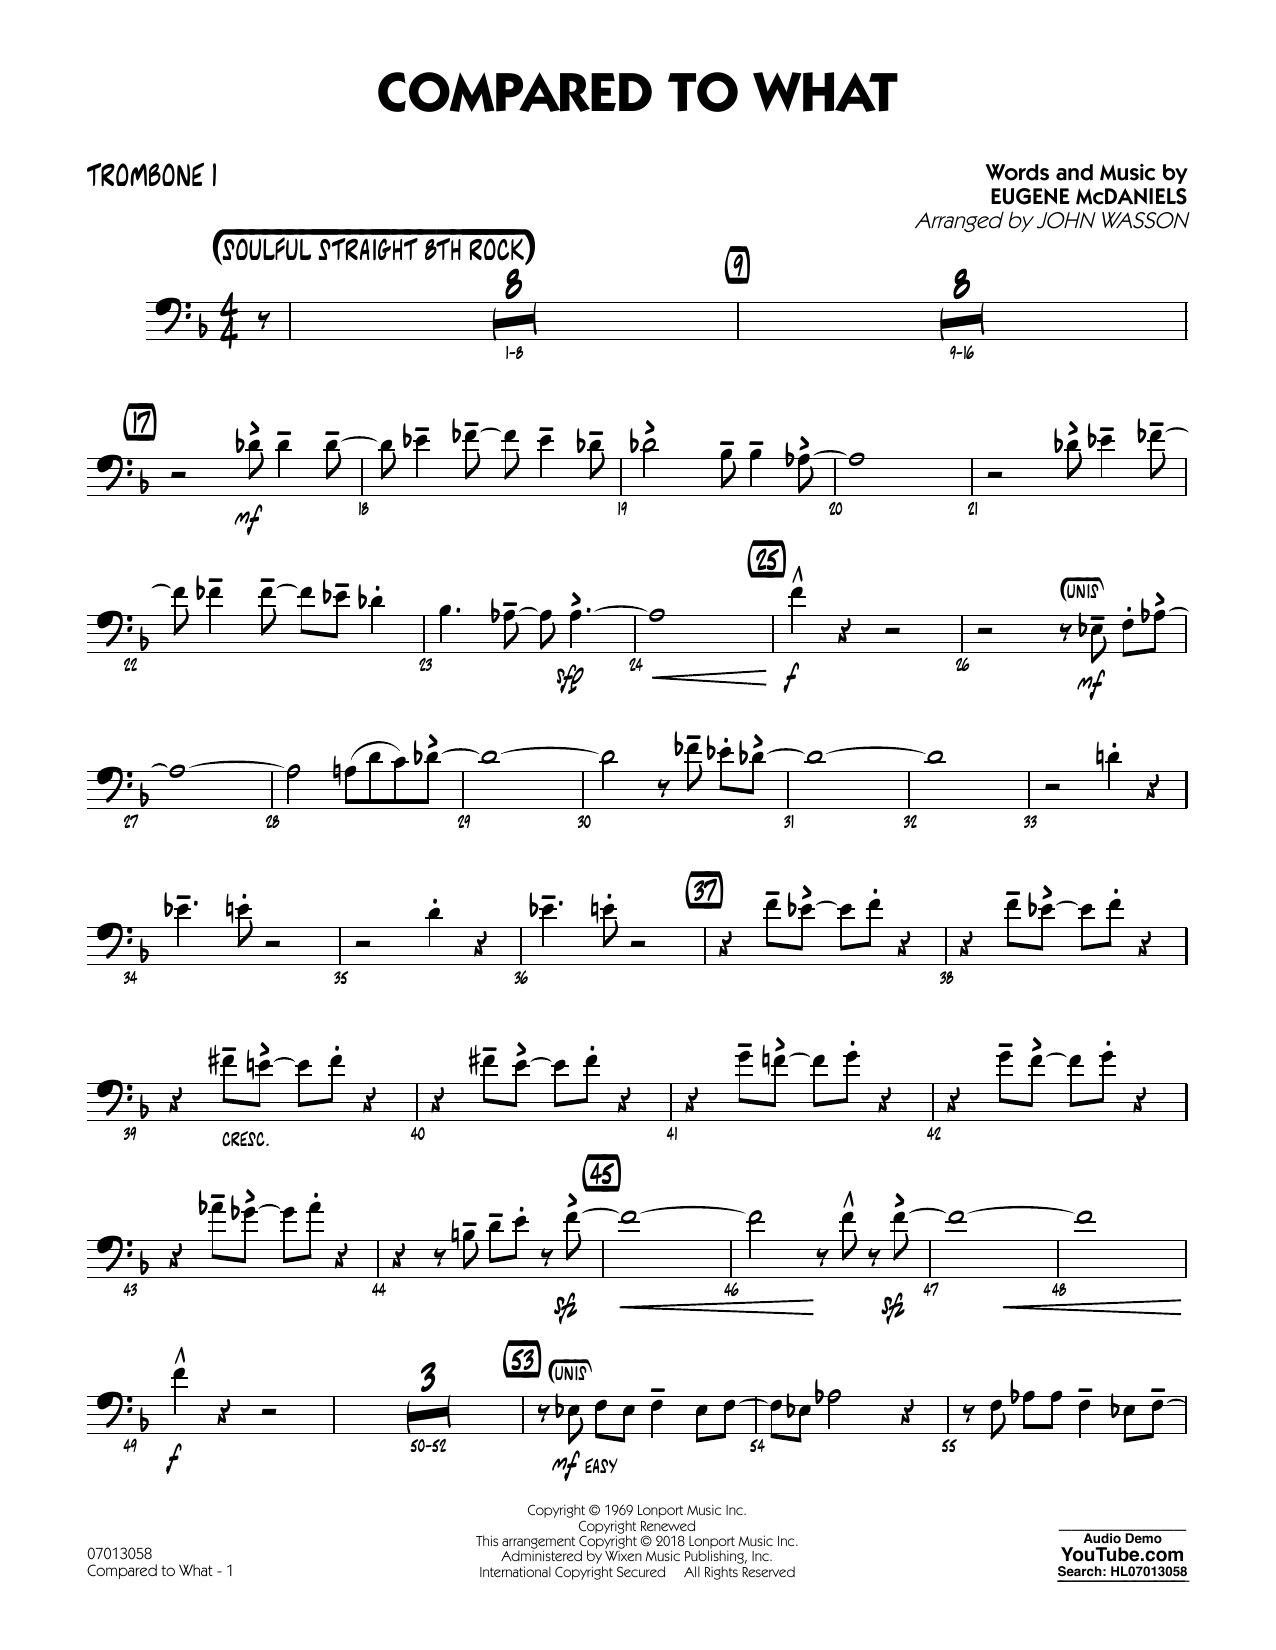 John Wasson Compared To What - Trombone 1 sheet music notes and chords. Download Printable PDF.